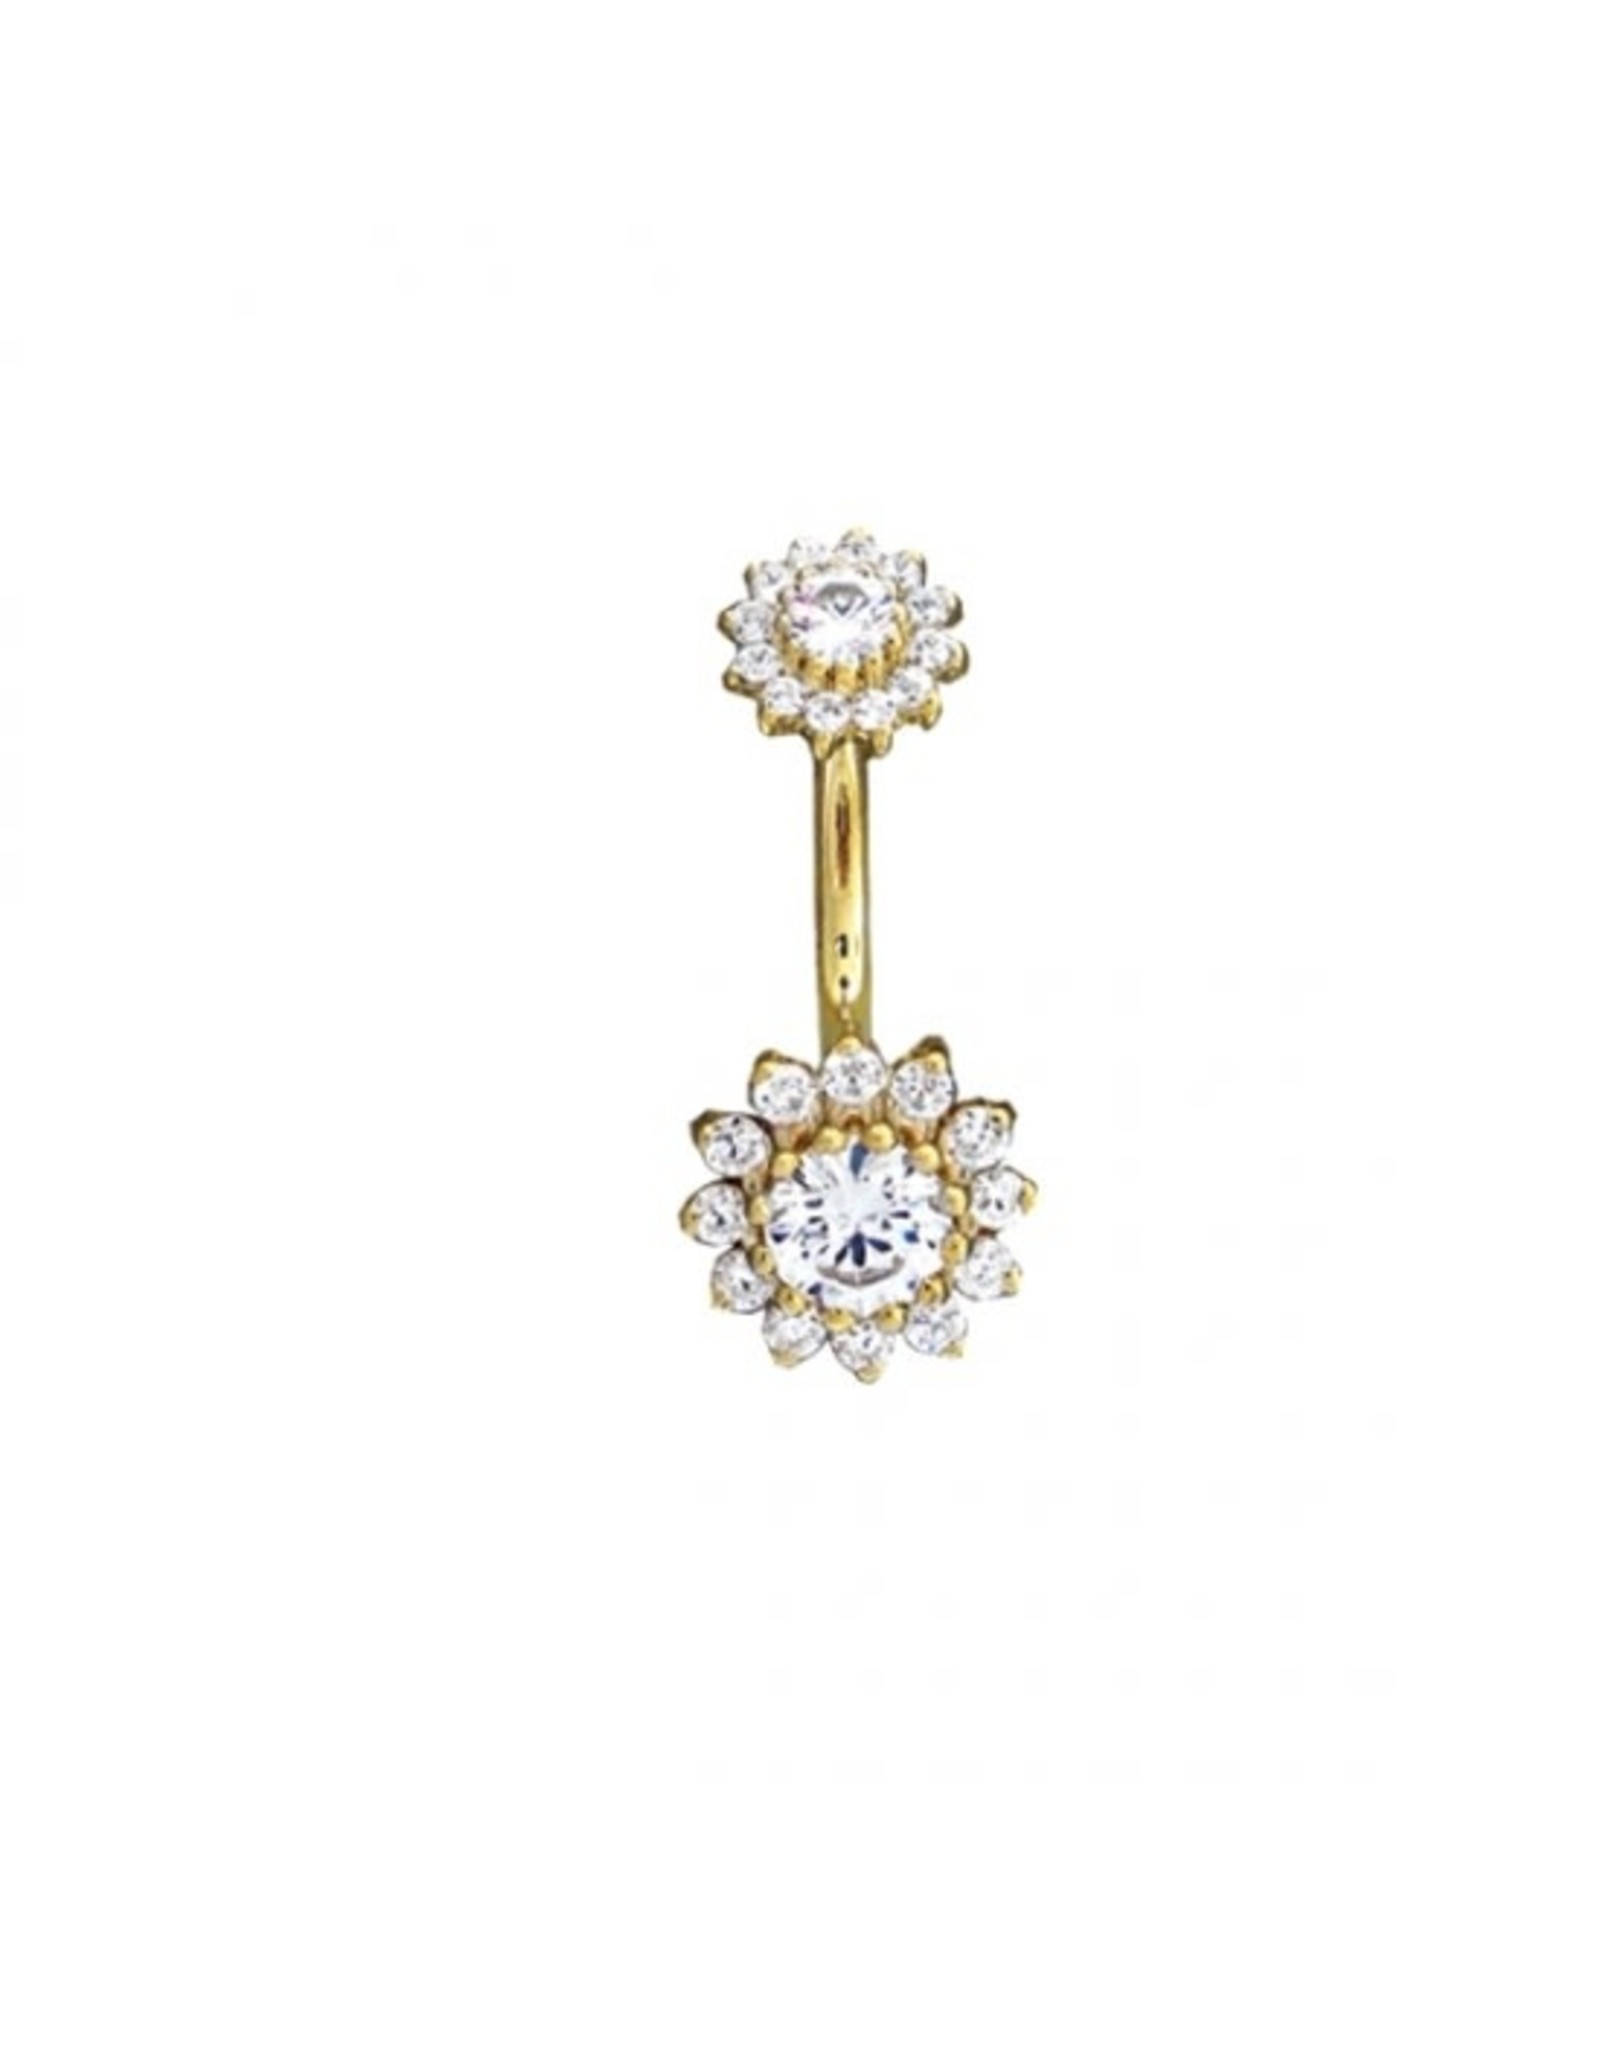 """BVLA BVLA 14g 7/16 yellow gold """"The Rose"""" navel curve with CZ"""